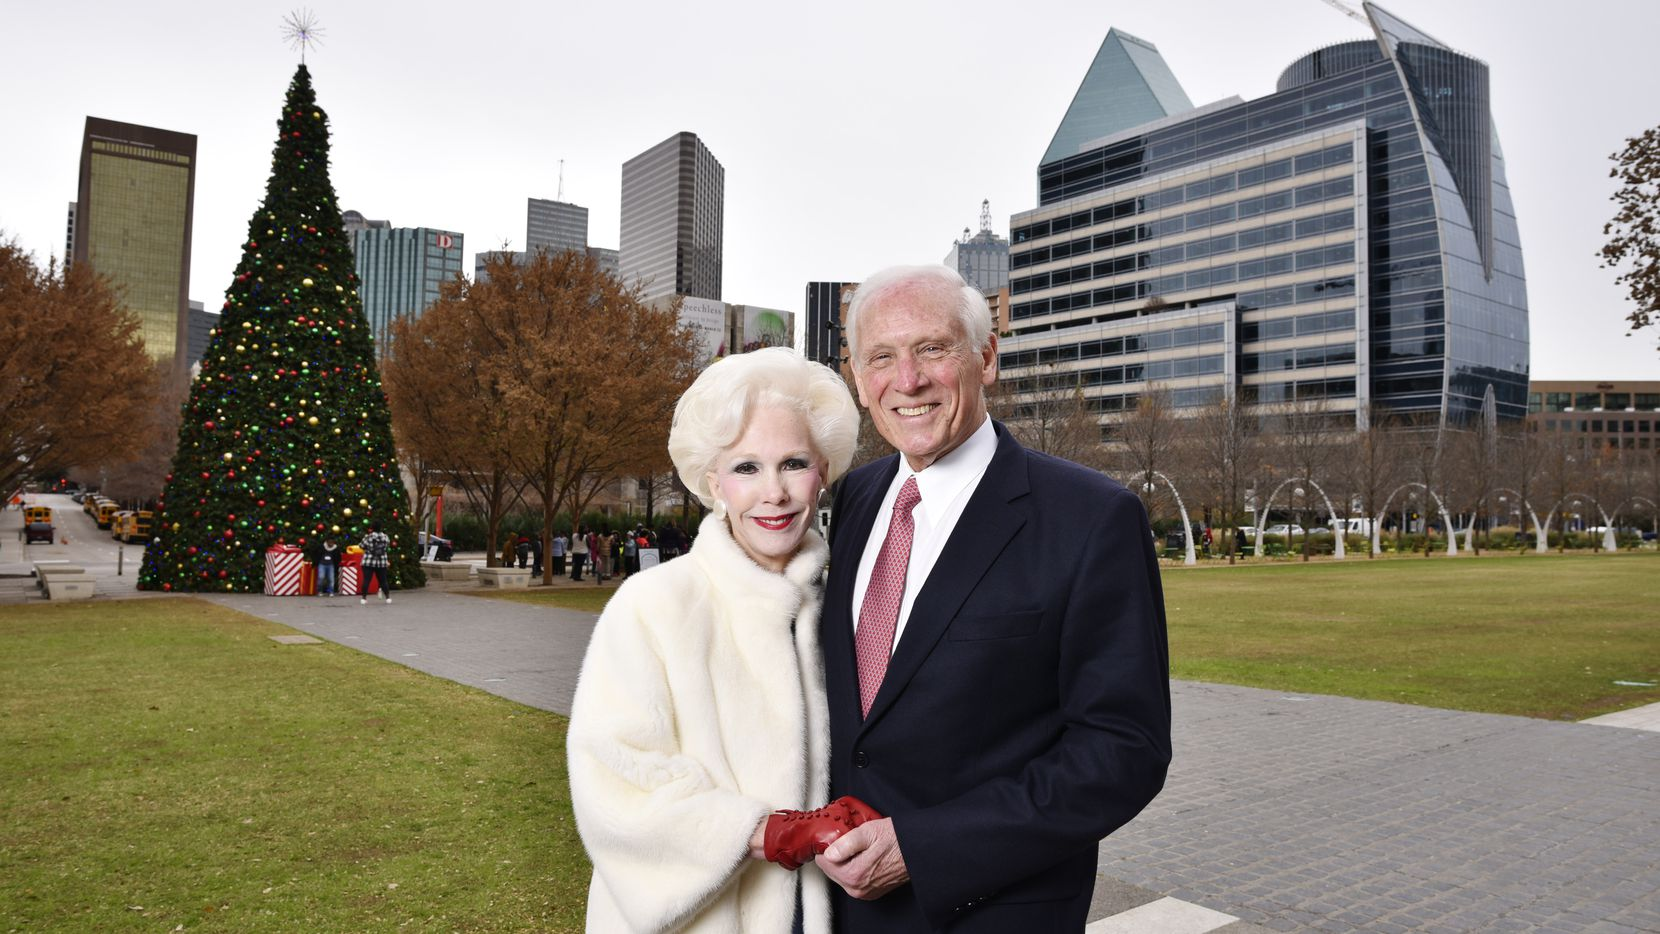 Sheila and Jody Grant, whose vision saw Klyde Warren Park become a reality, are finalists for Texan of the Year, photographed at Klyde Warren Park in Dallas, Dec. 10, 2019.